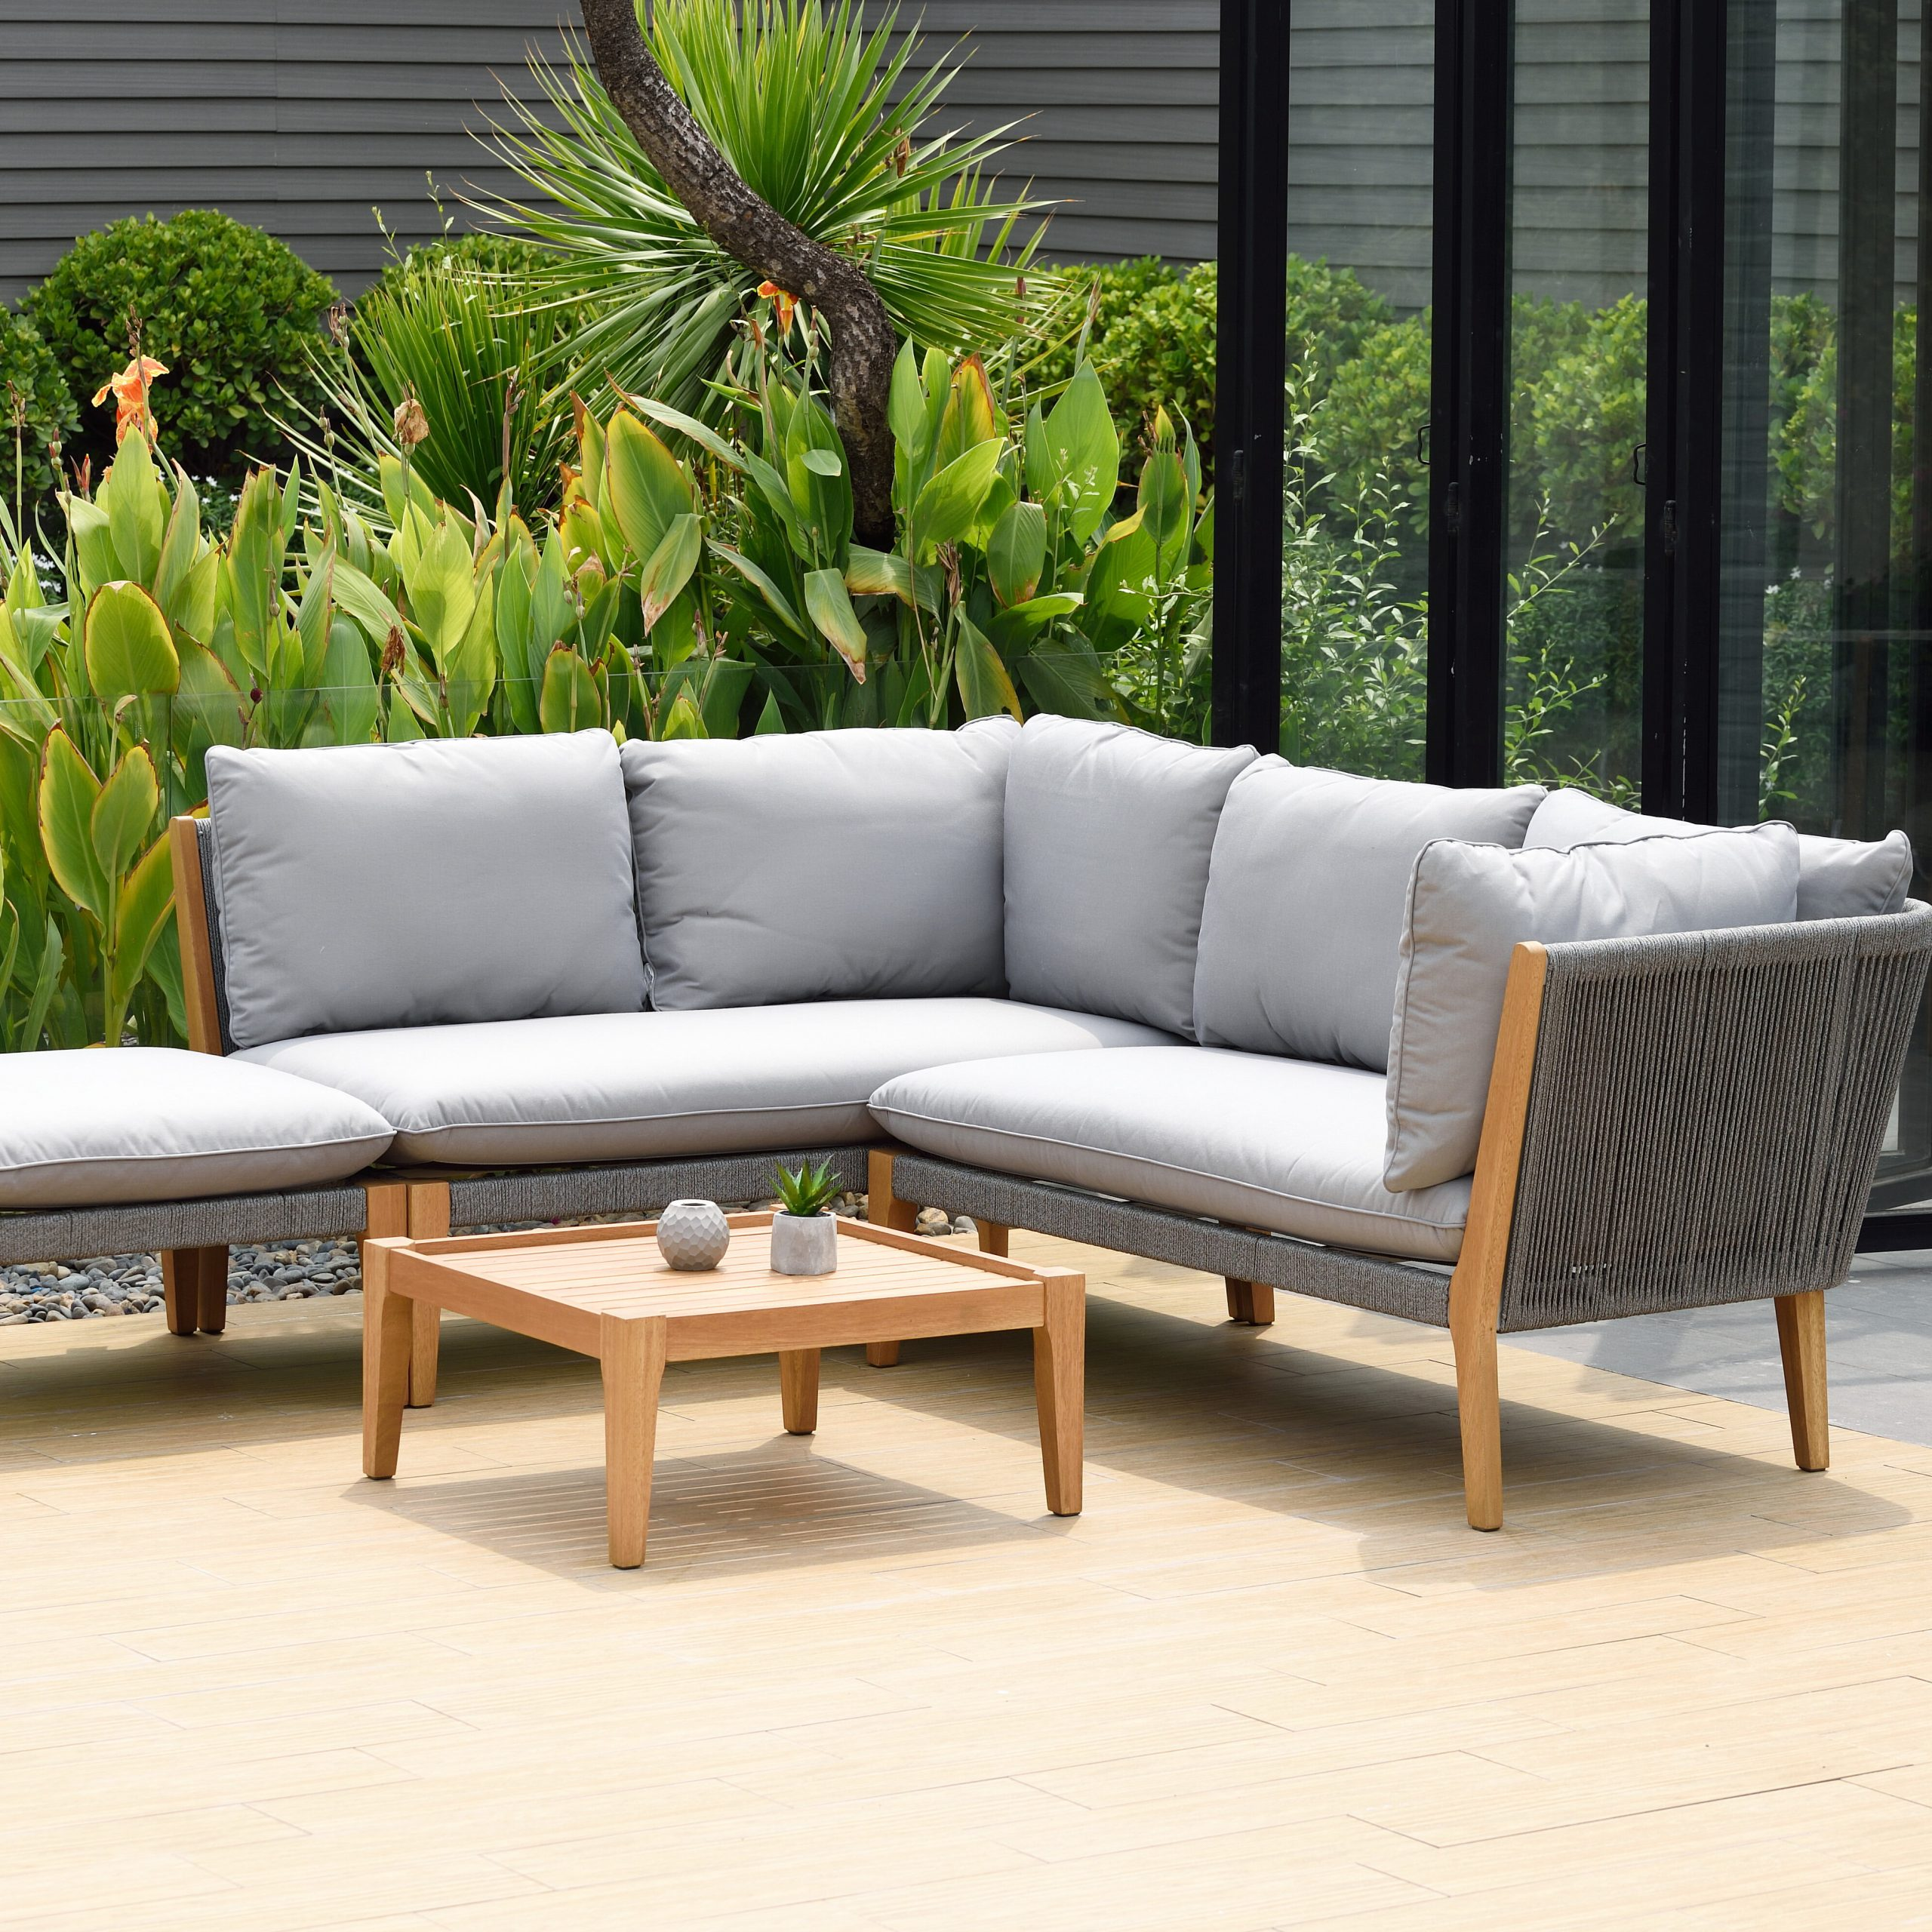 Olinda 3 Piece Sectionals Seating Group With Cushions Inside 2019 Olinda 3 Piece Sectional Seating Group With Cushions (View 11 of 25)